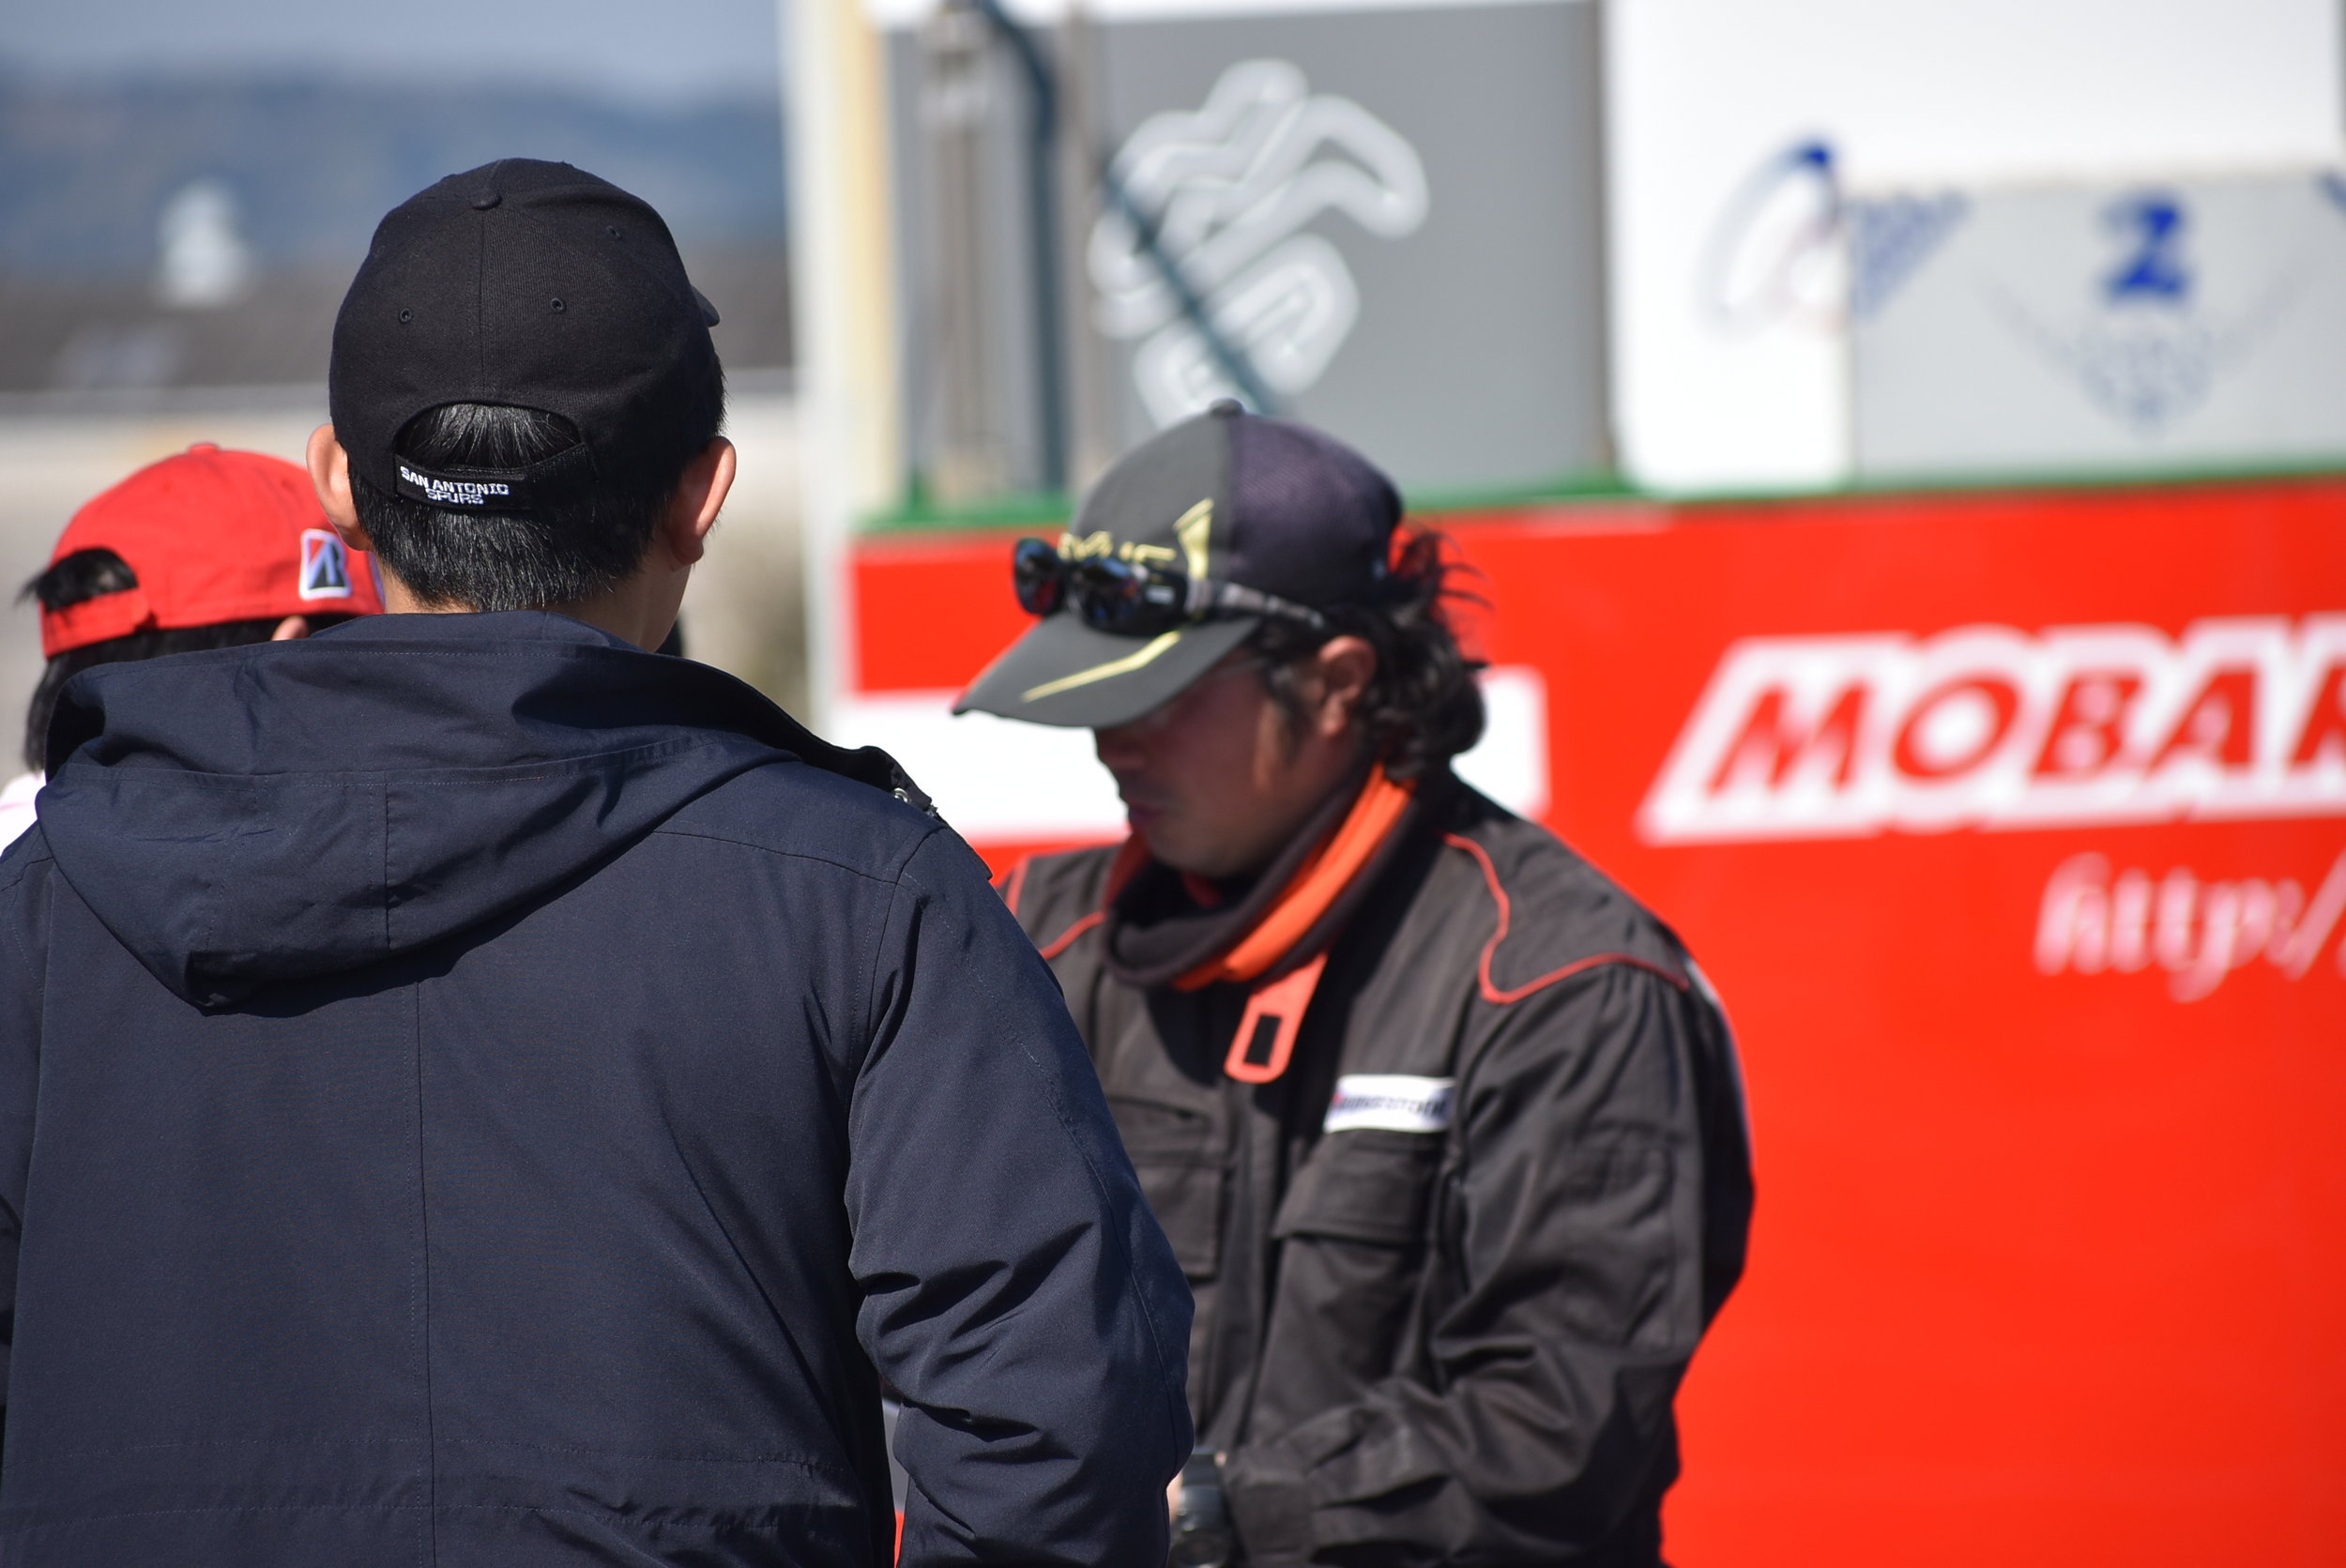 Drivers Meeting was brief and to the point. Don't crashu or you'll pay for barriers; OK, got it!